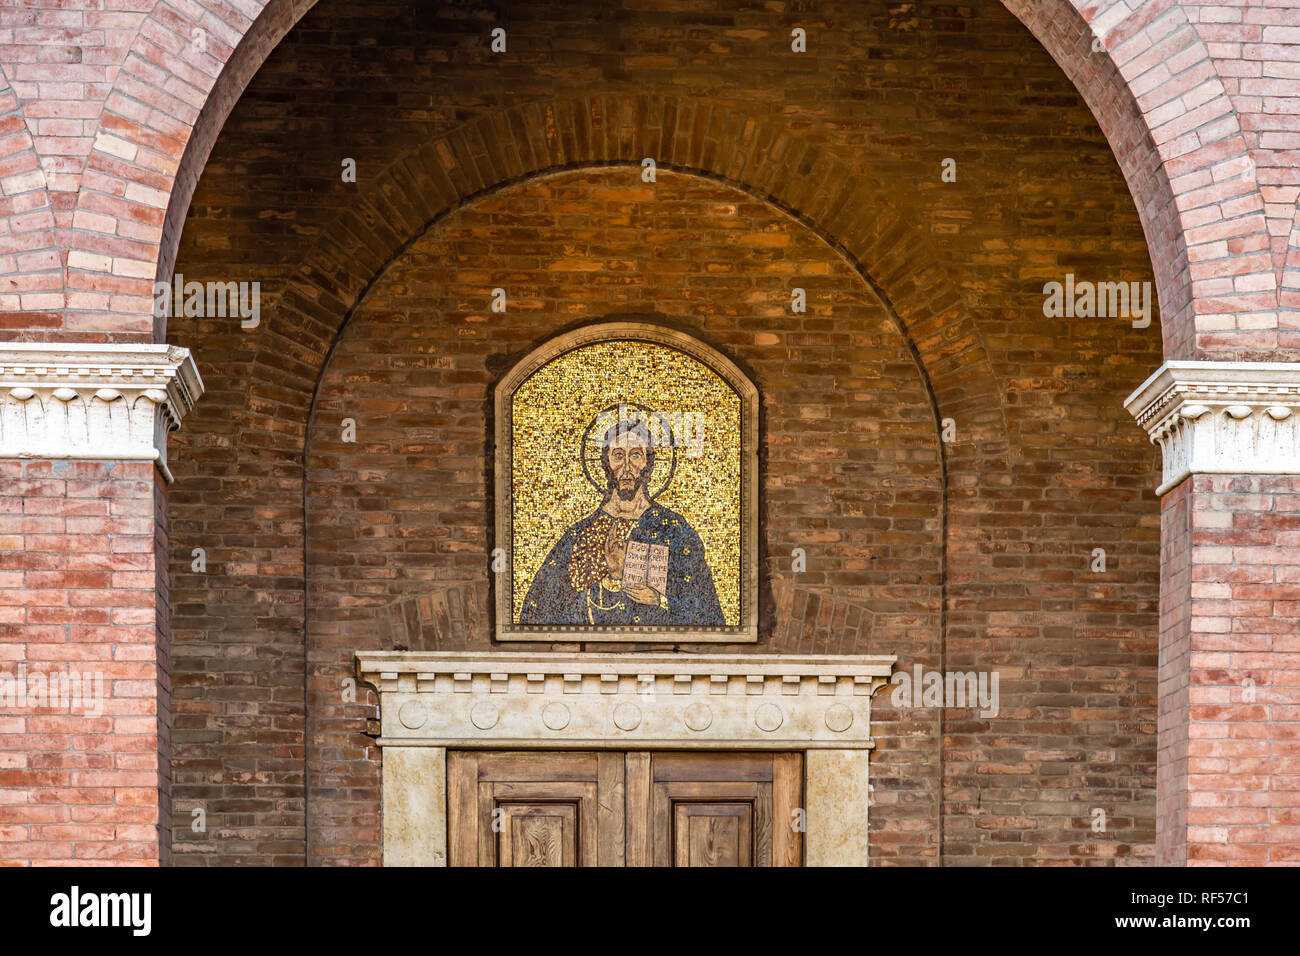 ROME, ITALY - JANUARY 4, 2019: sun light is enlightening mosaic of Jesus Christ in Saint Anselm of Canterbury church - Stock Image